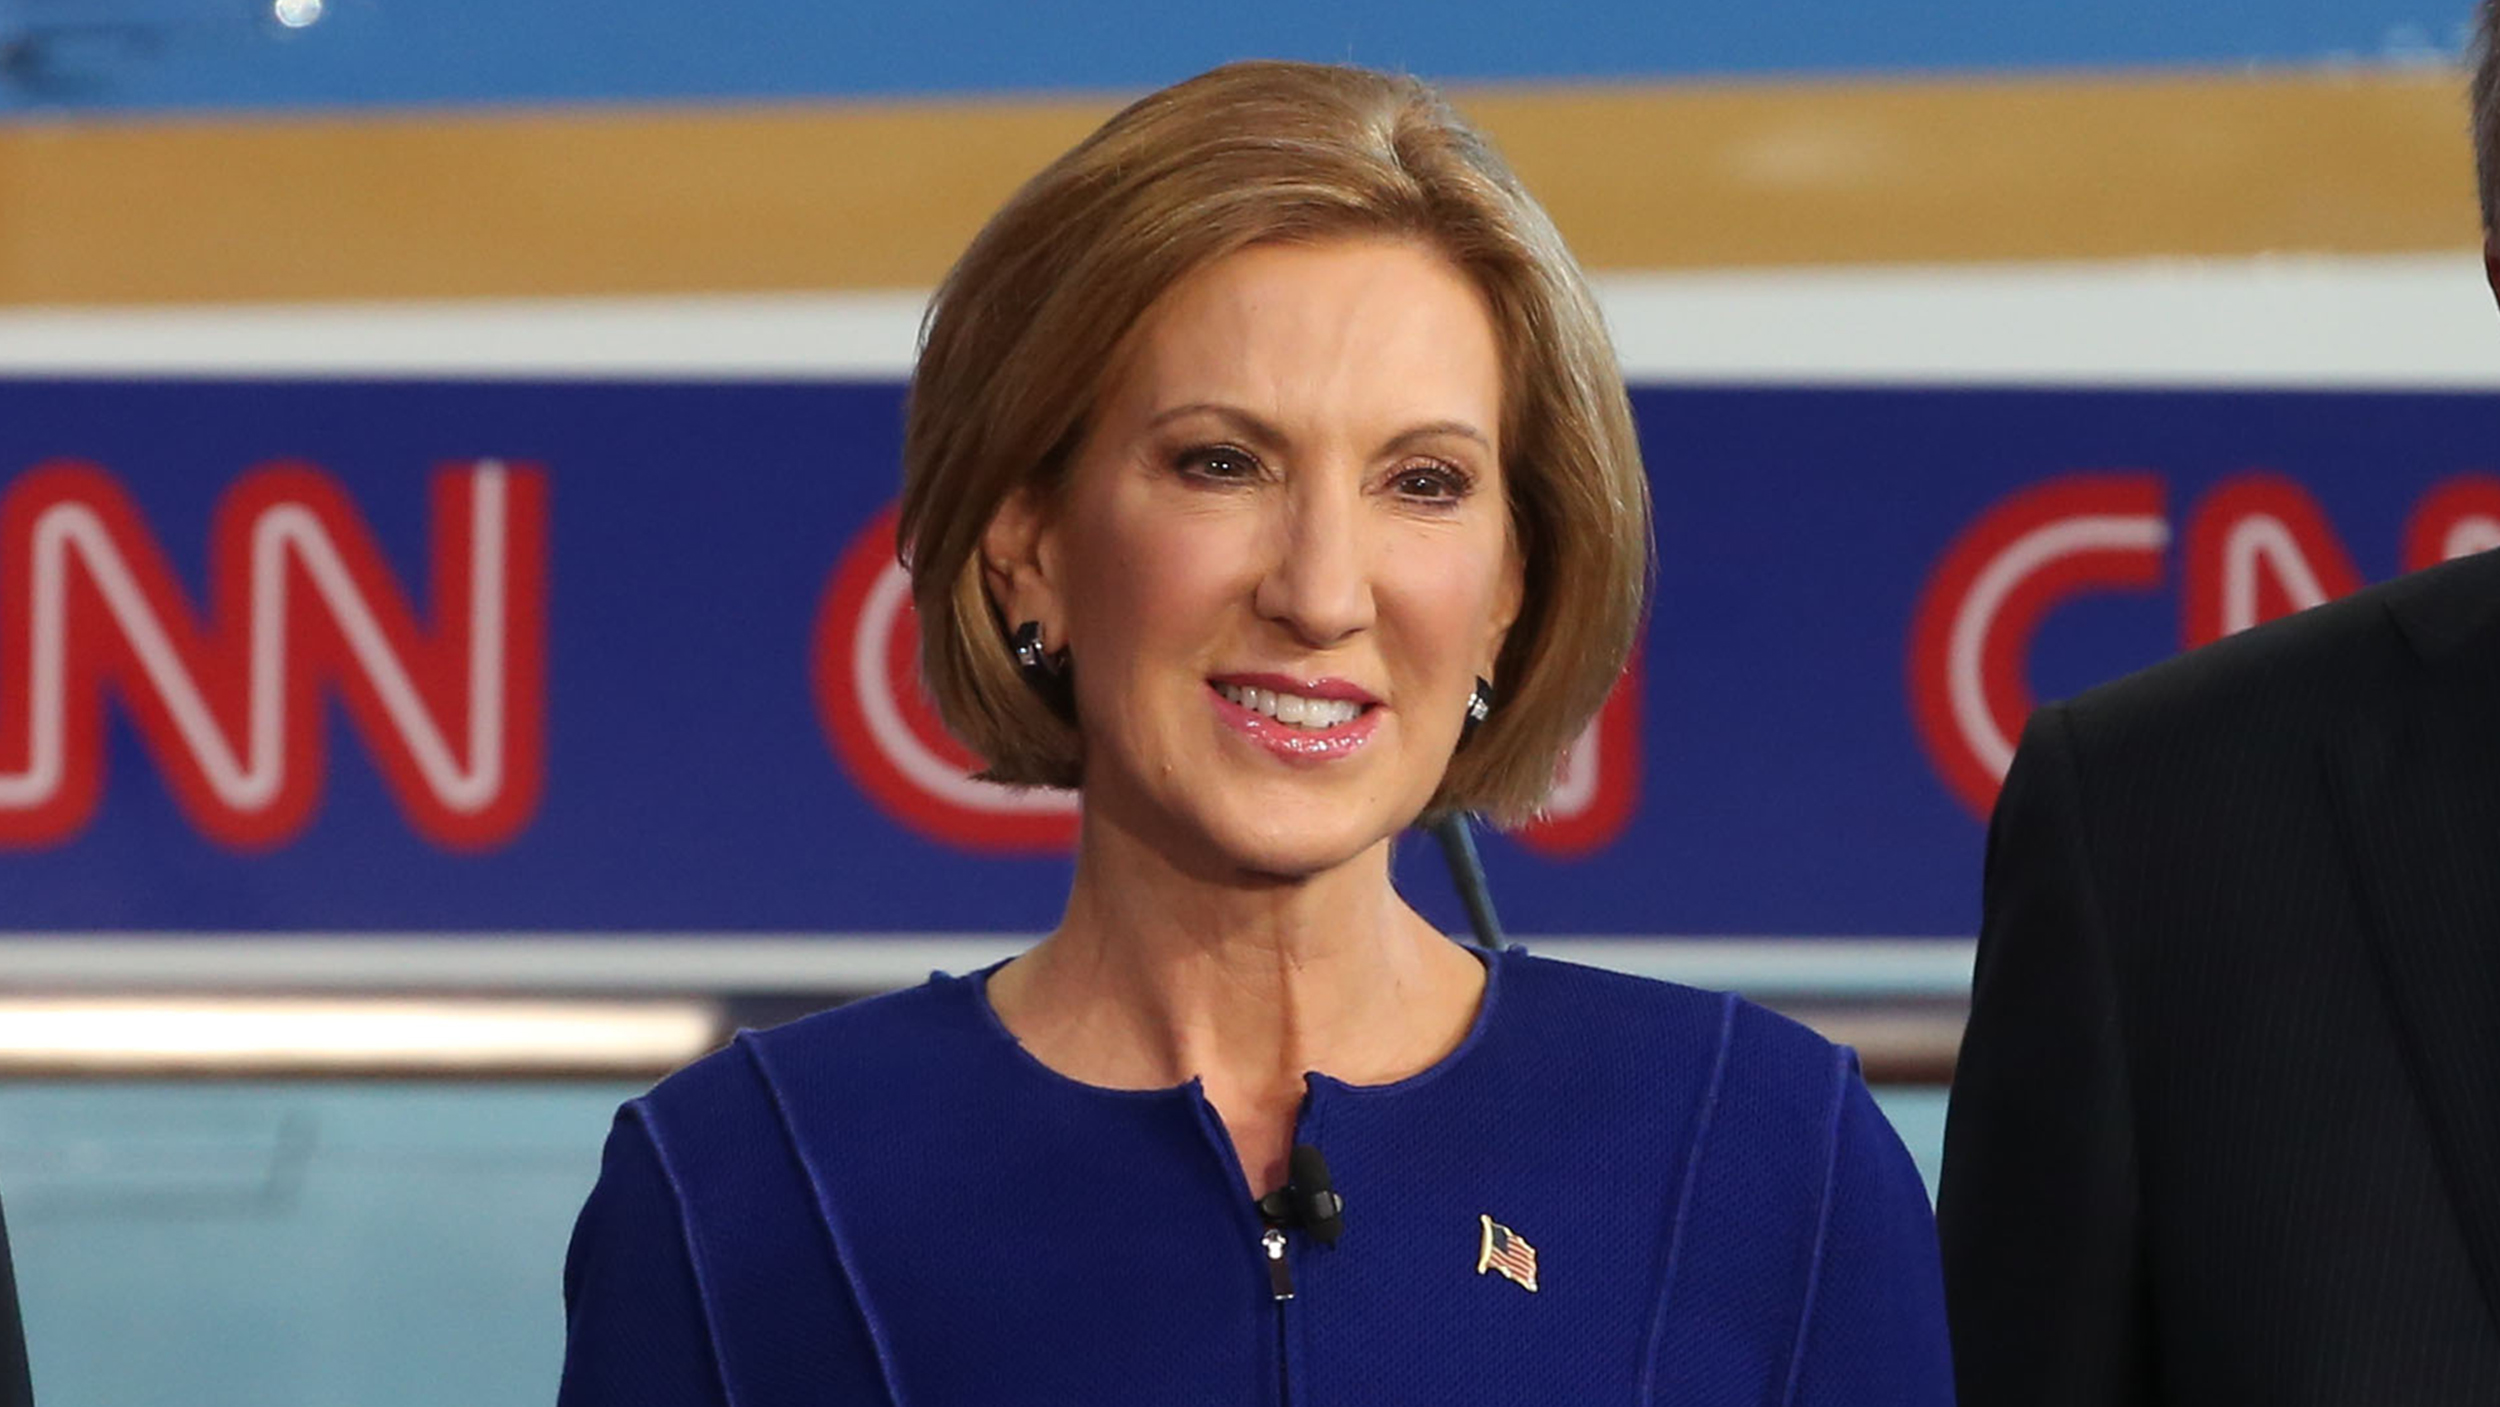 meet the press sunday may 10 with carly fiorina